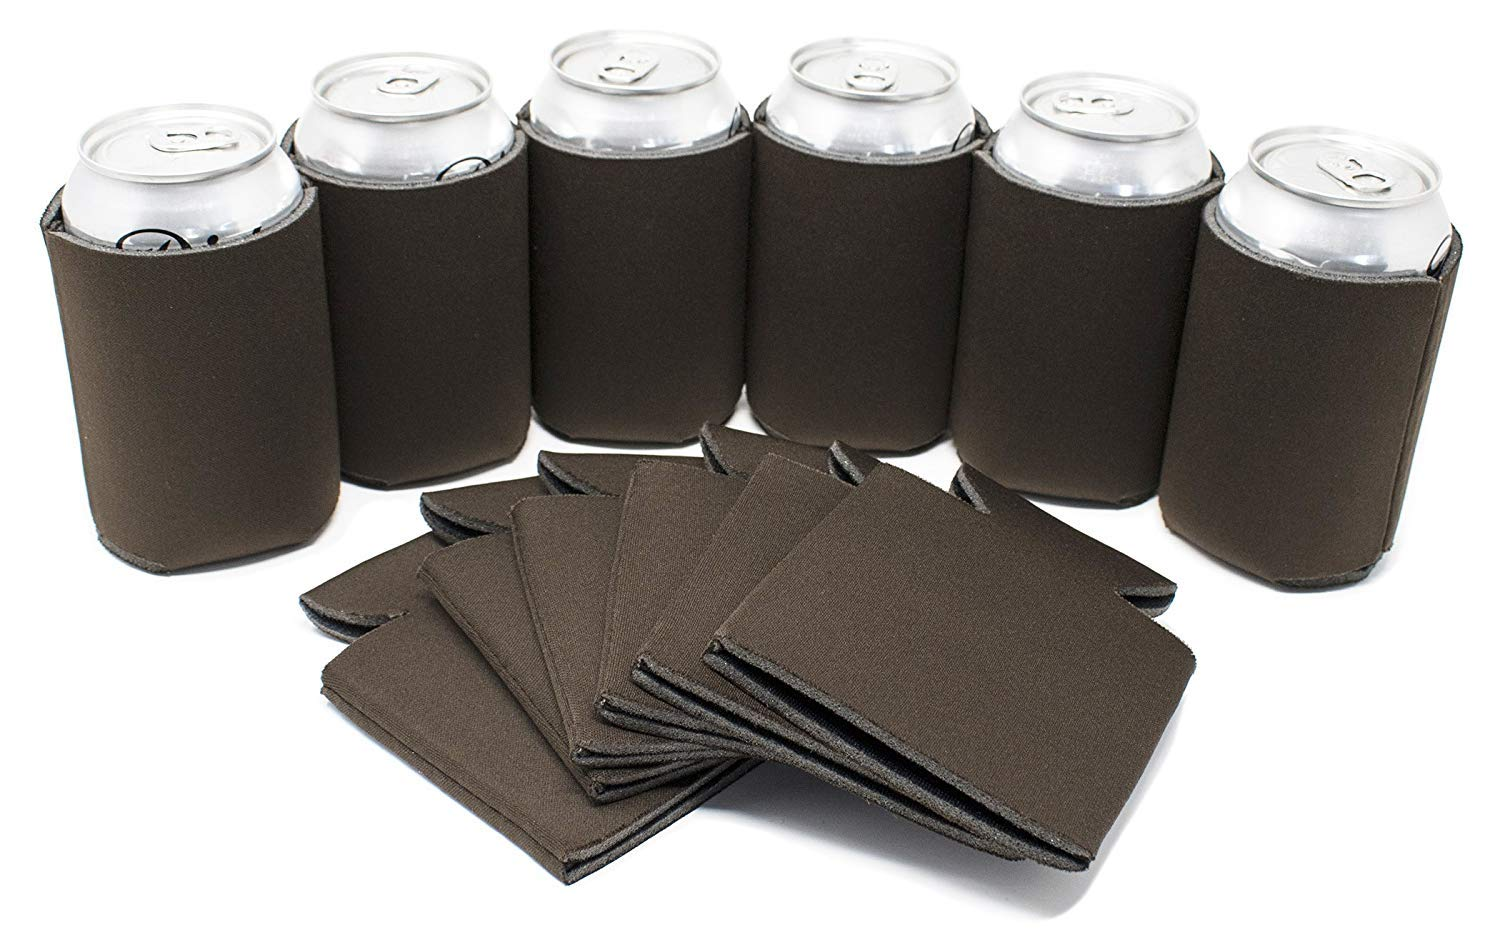 TahoeBay 12 Blank Beer Can Coolers, Plain Bulk Collapsible Soda Cover Coolies, DIY Personalized Sublimation Sleeves for Weddings, Bachelorette Parties, Funny HTV Party Favors (Chocolate Brown, 12)